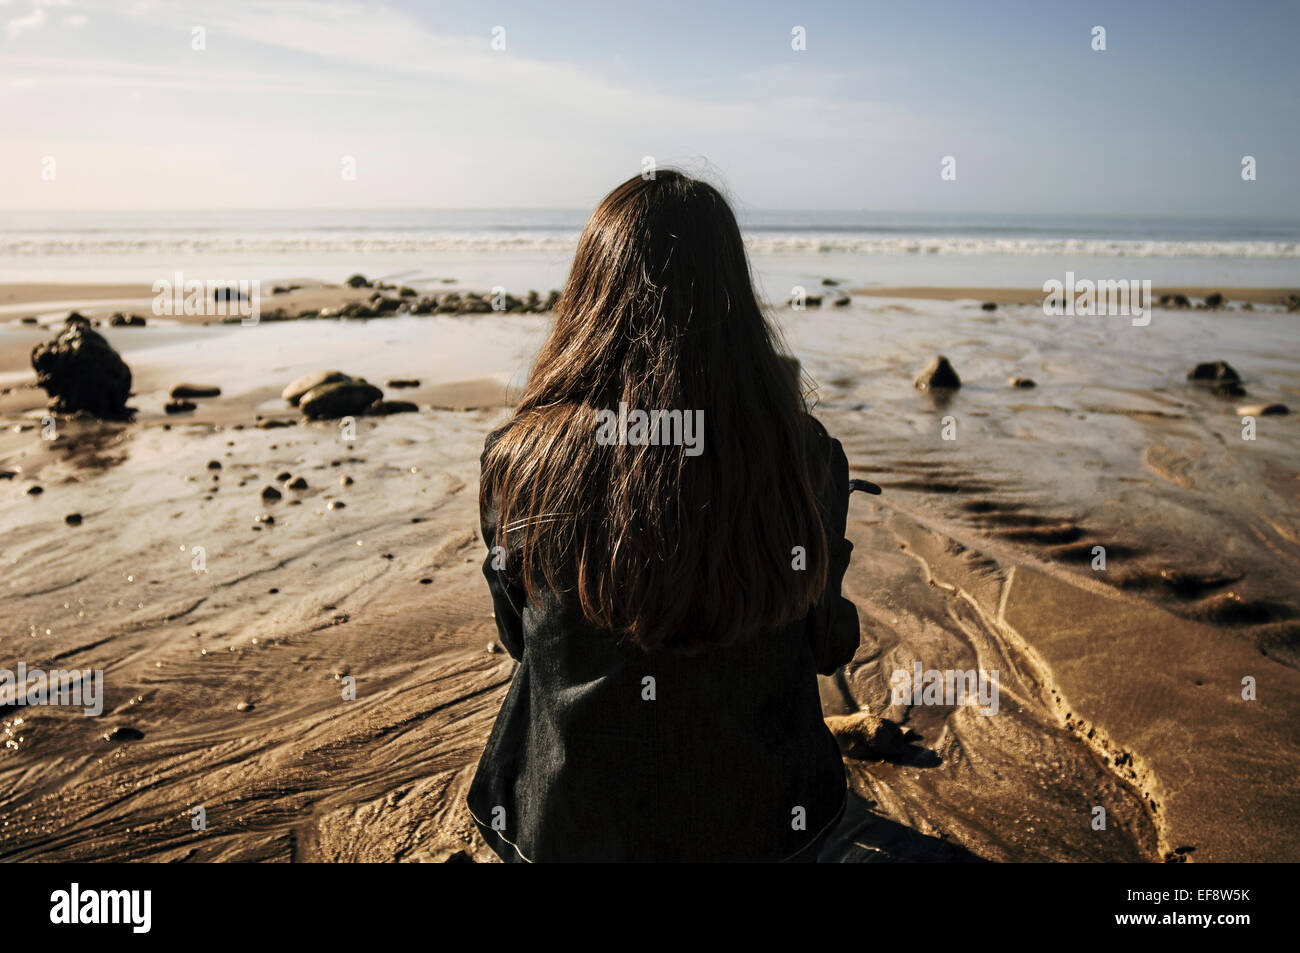 France, Young woman sitting on sand looking at sea - Stock Image